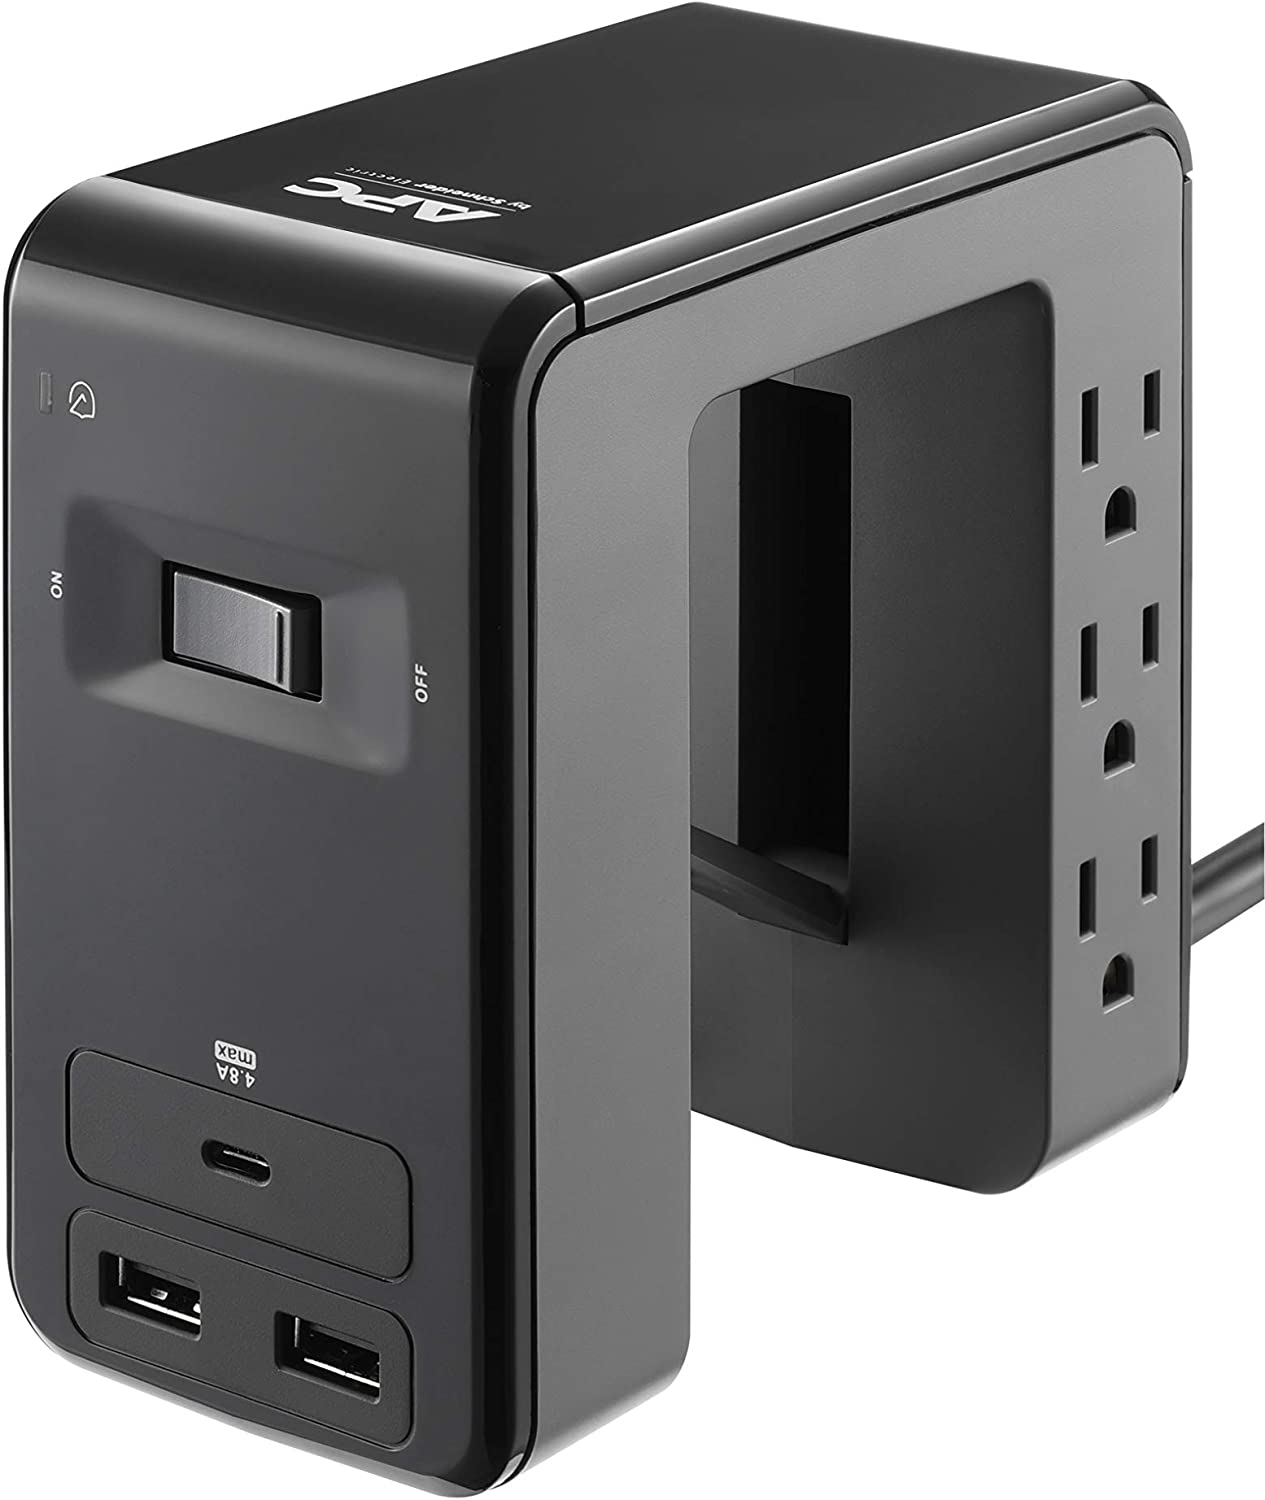 APC PE6U21 Desk Mount Power Station, U-Shaped Surge Protector